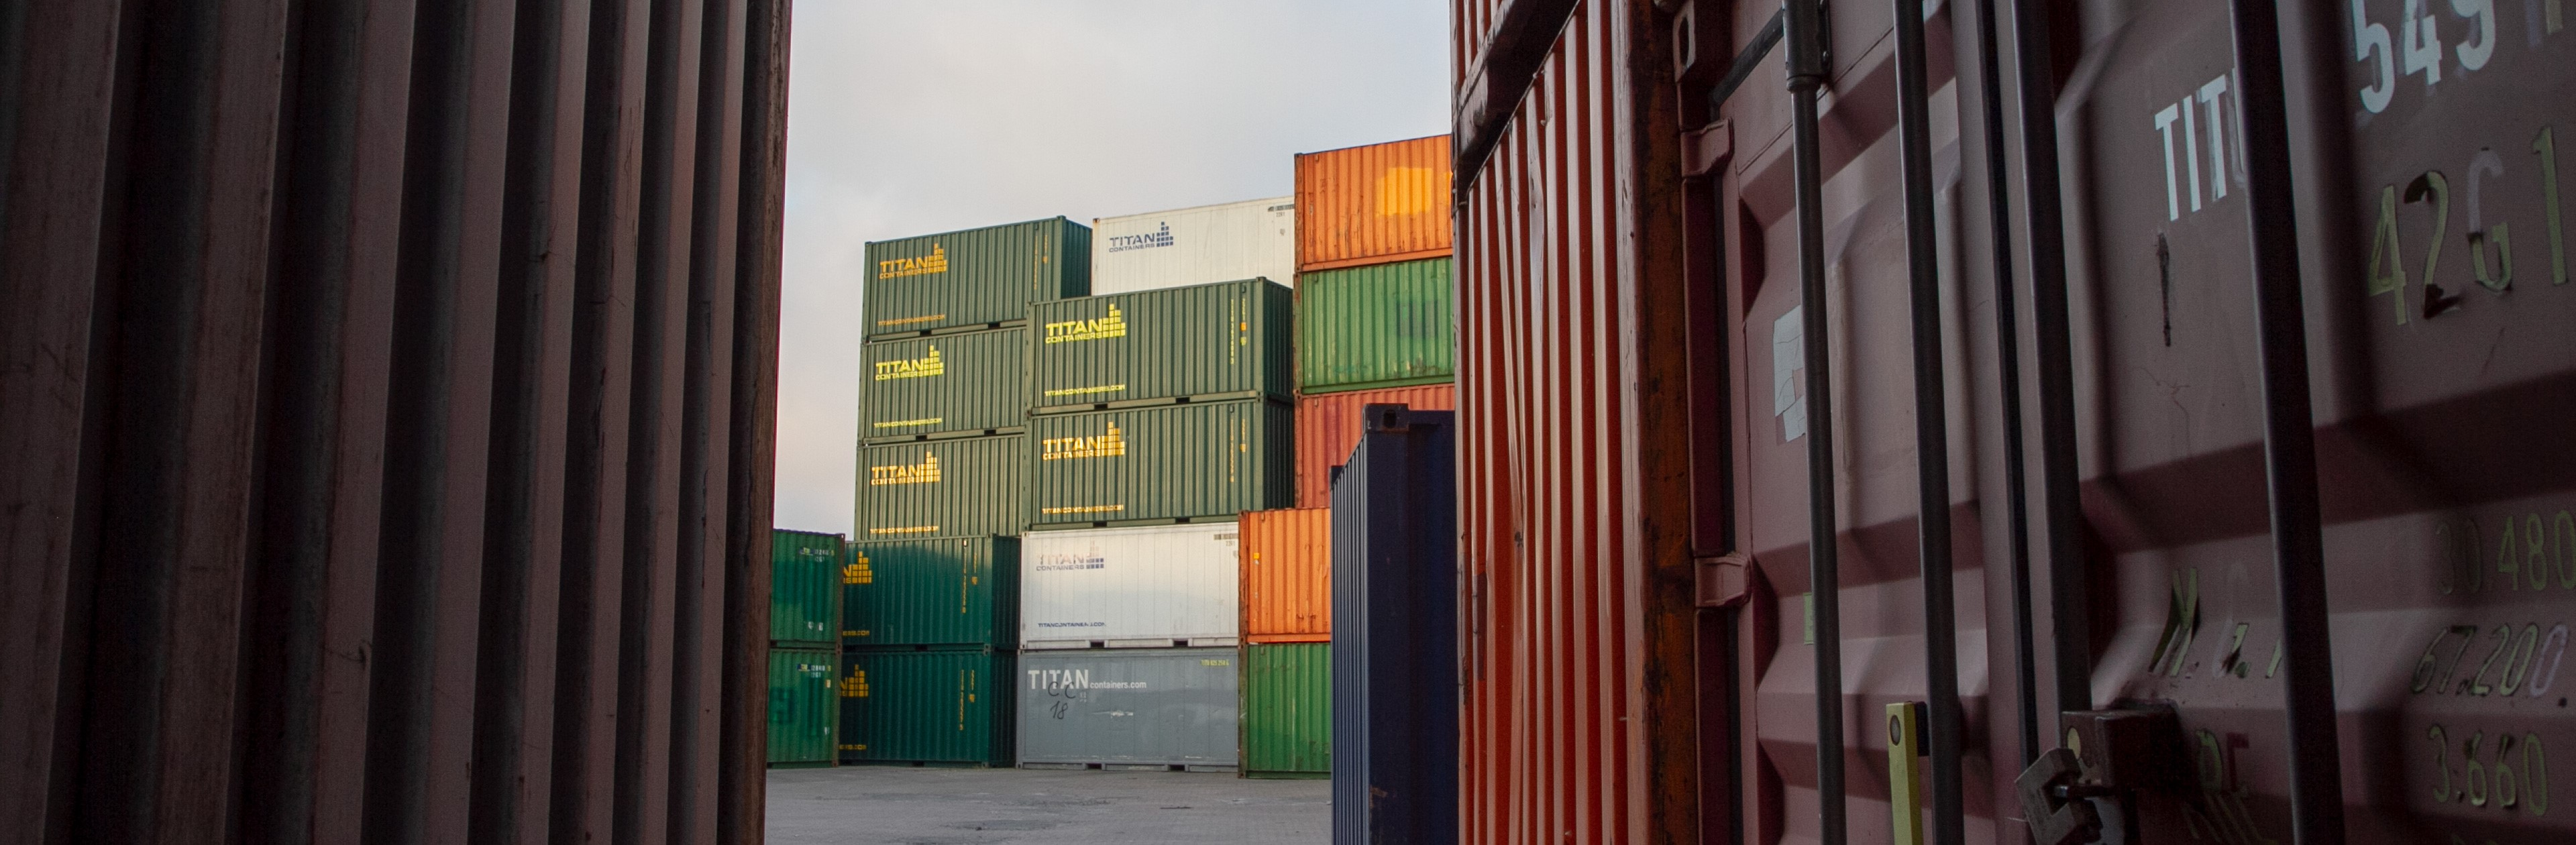 Location Container Garde Meuble Containers Maritimes Vente Containers Location Containers